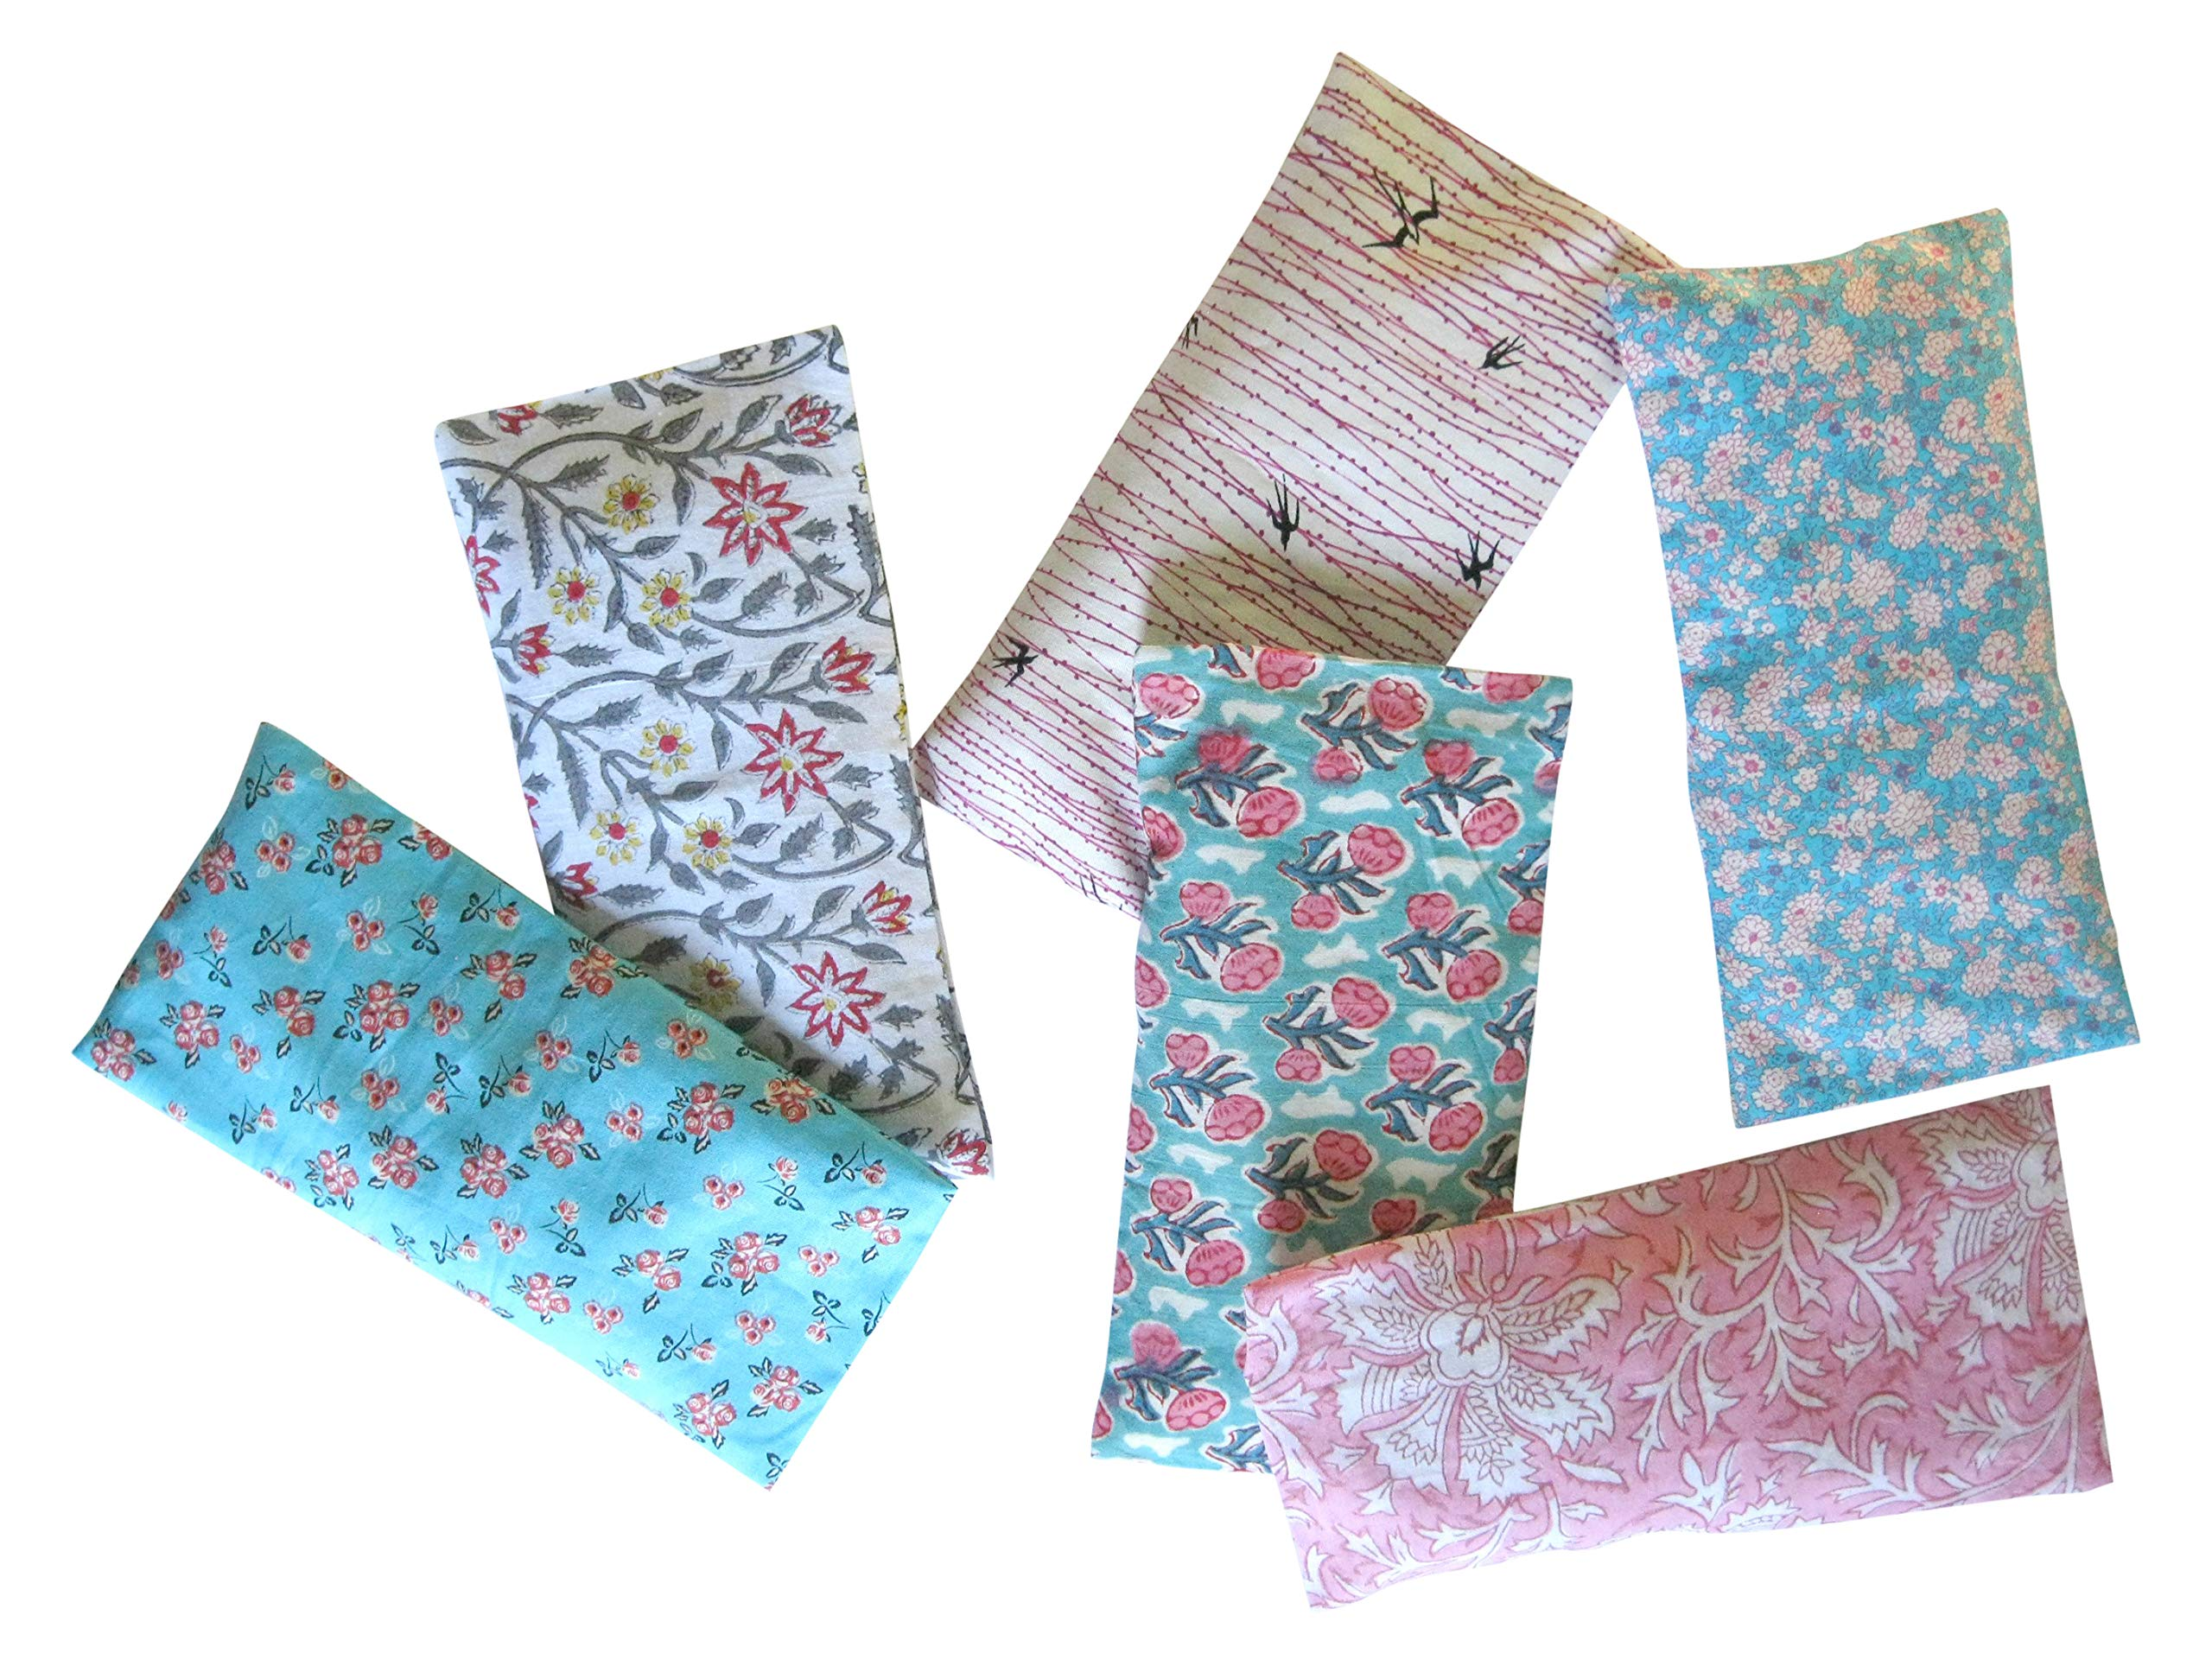 Peacegoods Aromatherapy Yoga Eye Pillow - Pack of (6) - 4.5 x 9 - Organic Lavender Chamomile Flax - Washable Cover Cotton - bulk - teal green magenta pink purple flowers leaves turquoise block print